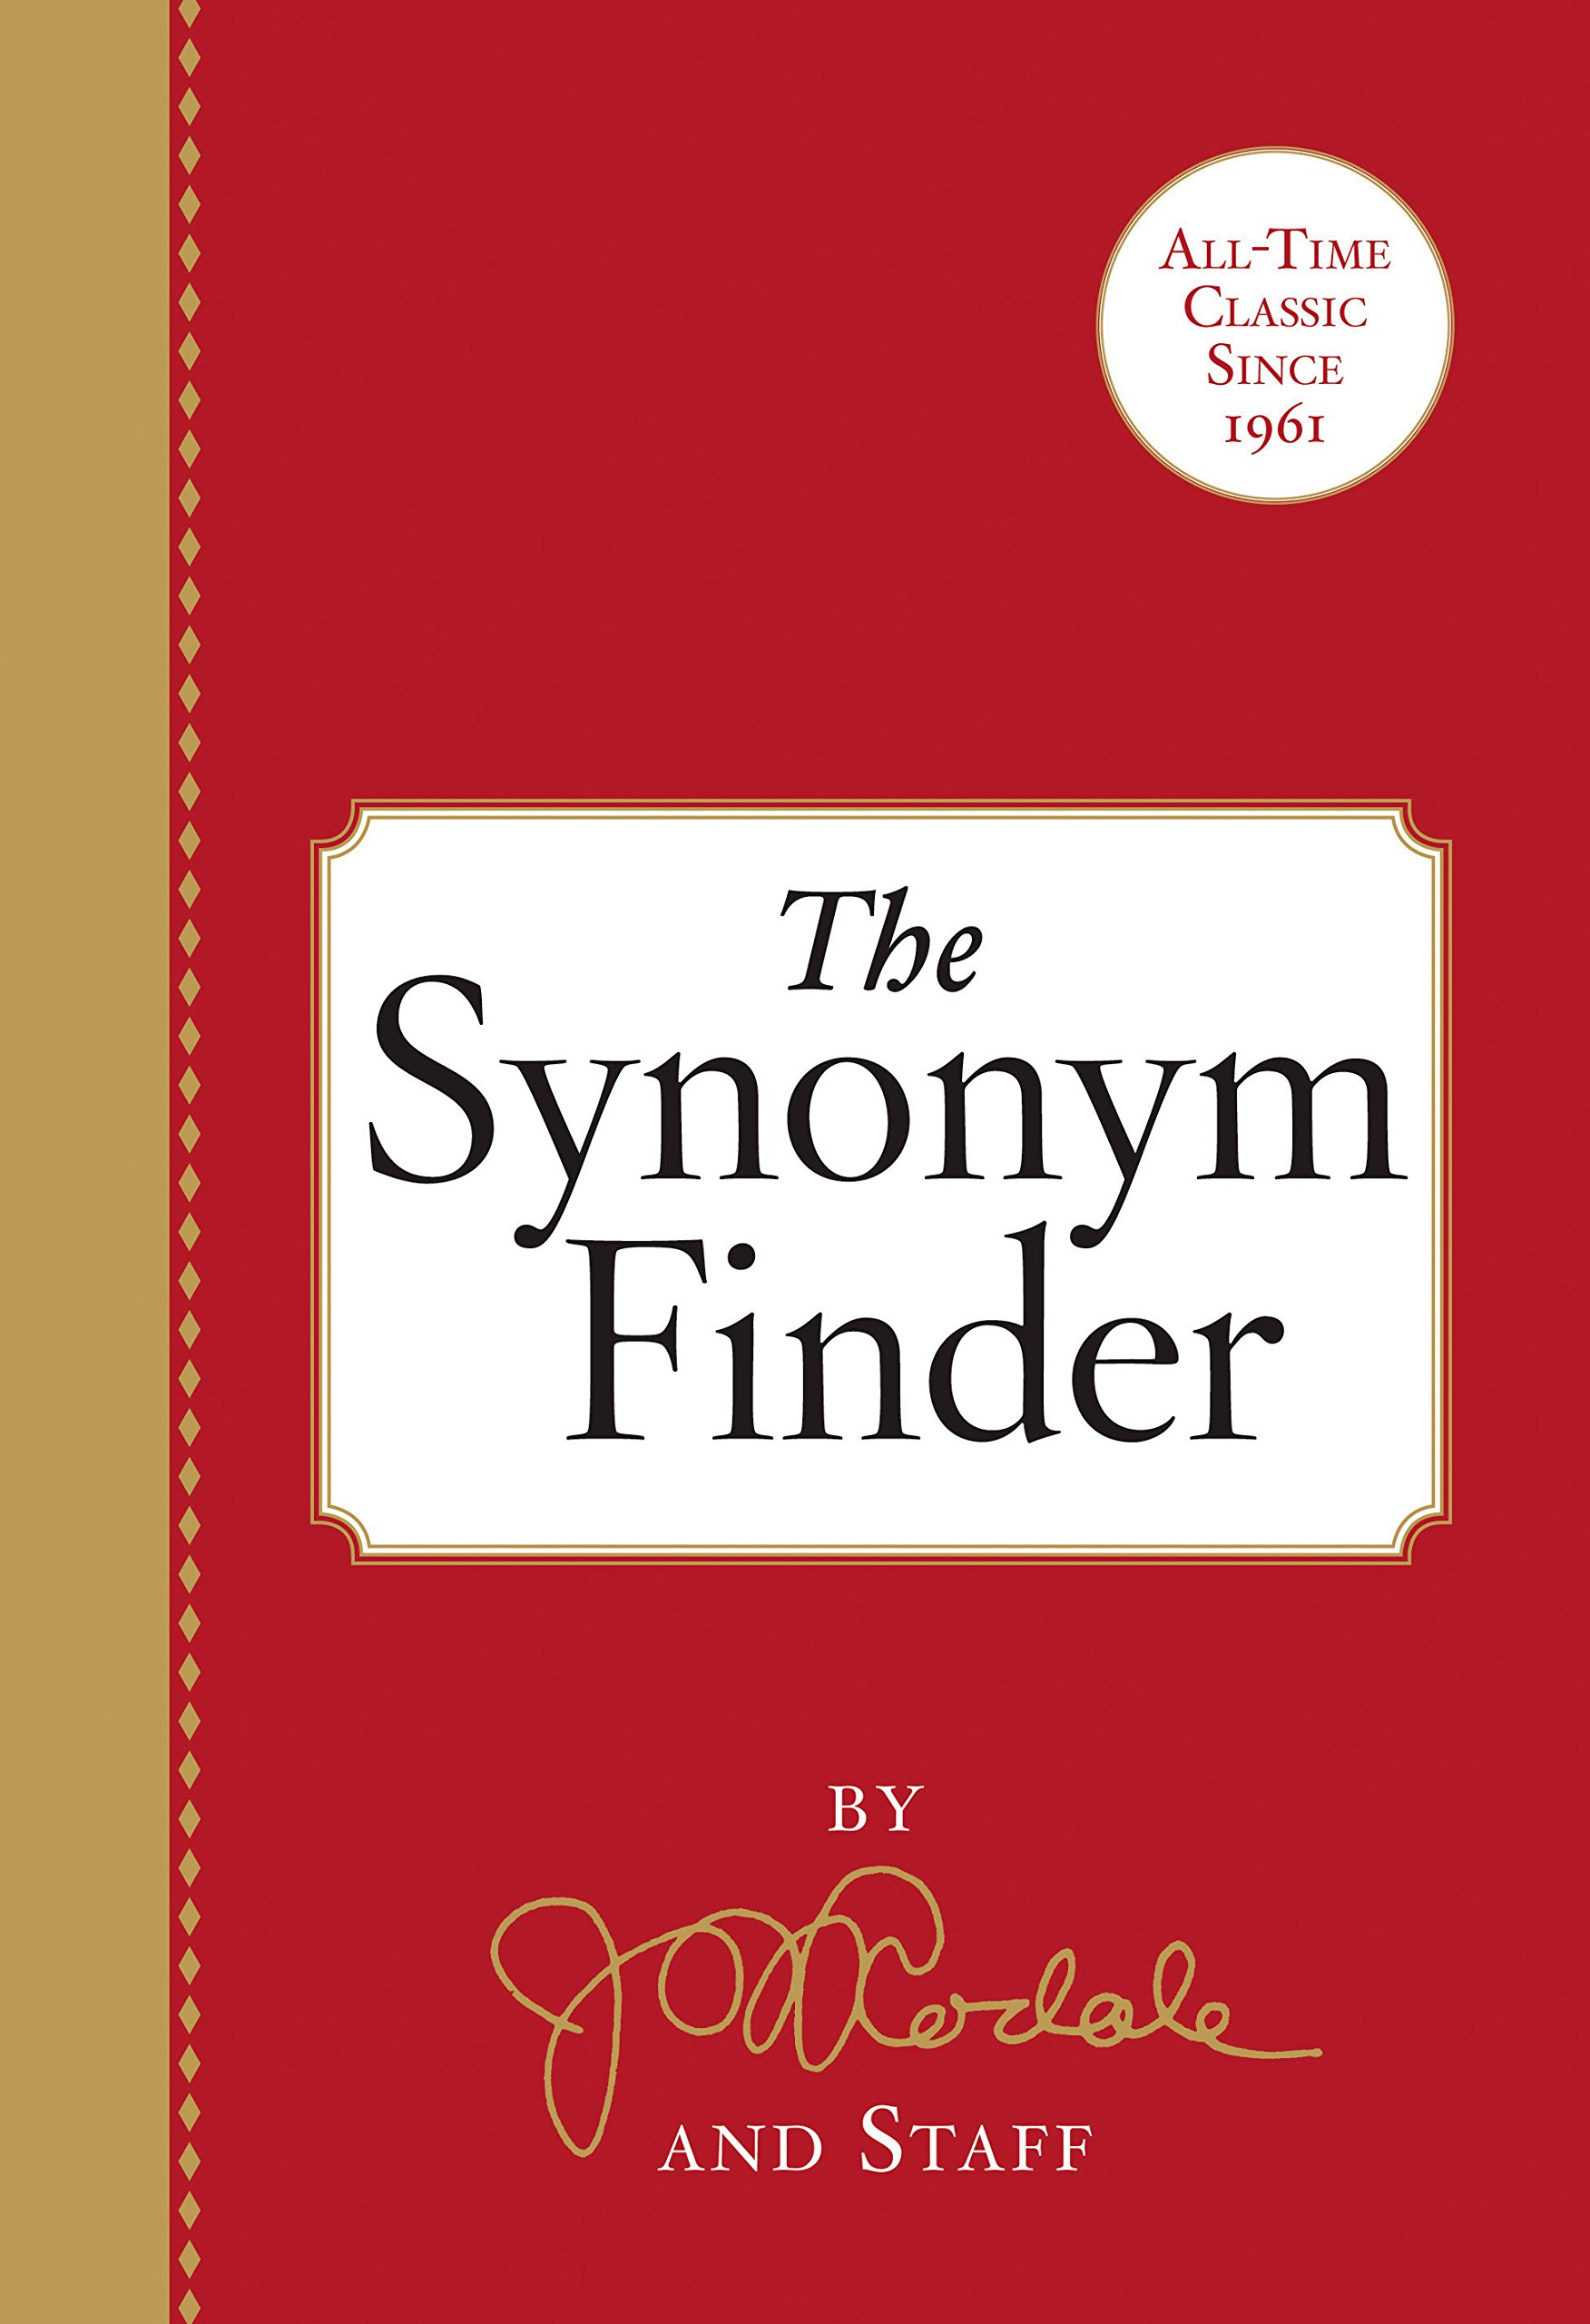 The Synonym Finder Kindle Edition By Urdang Laurence Laroche Nancy Rodale J I Reference Kindle Ebooks Amazon Com Functional, efficient, realistic, pragmatic, unrealistic | collins english thesaurus. the synonym finder kindle edition by